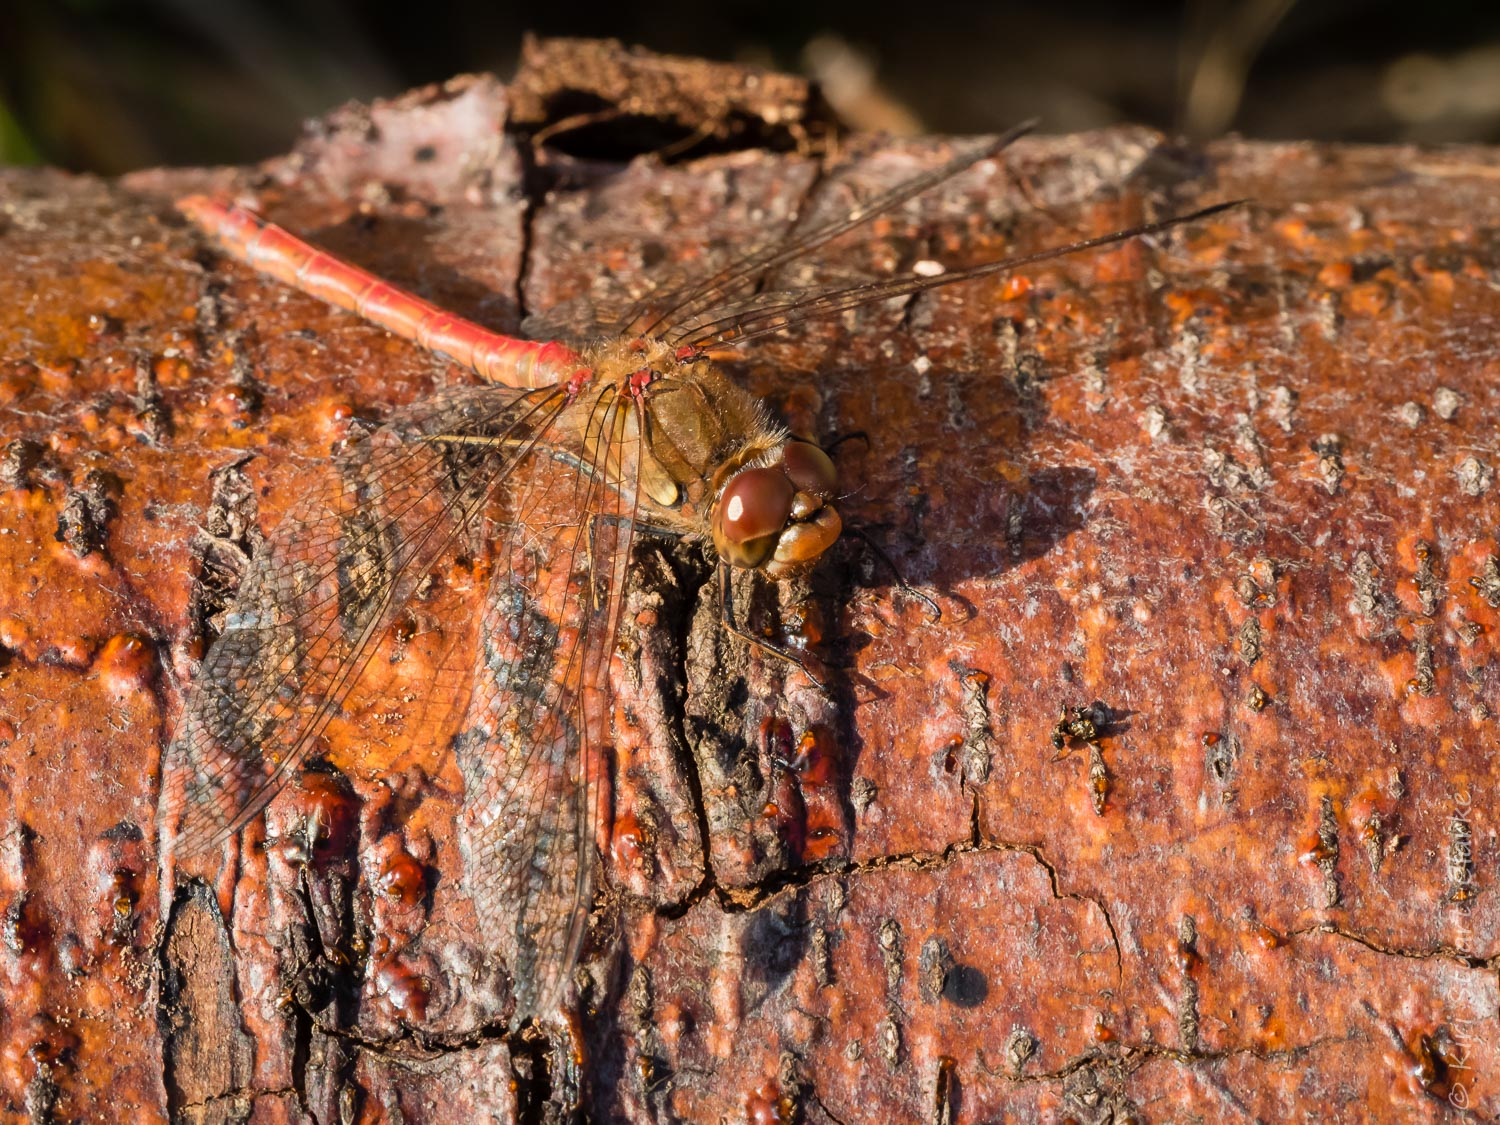 A red Common Darter dragonfly enjoying late October sunshine on a fallen pine tree